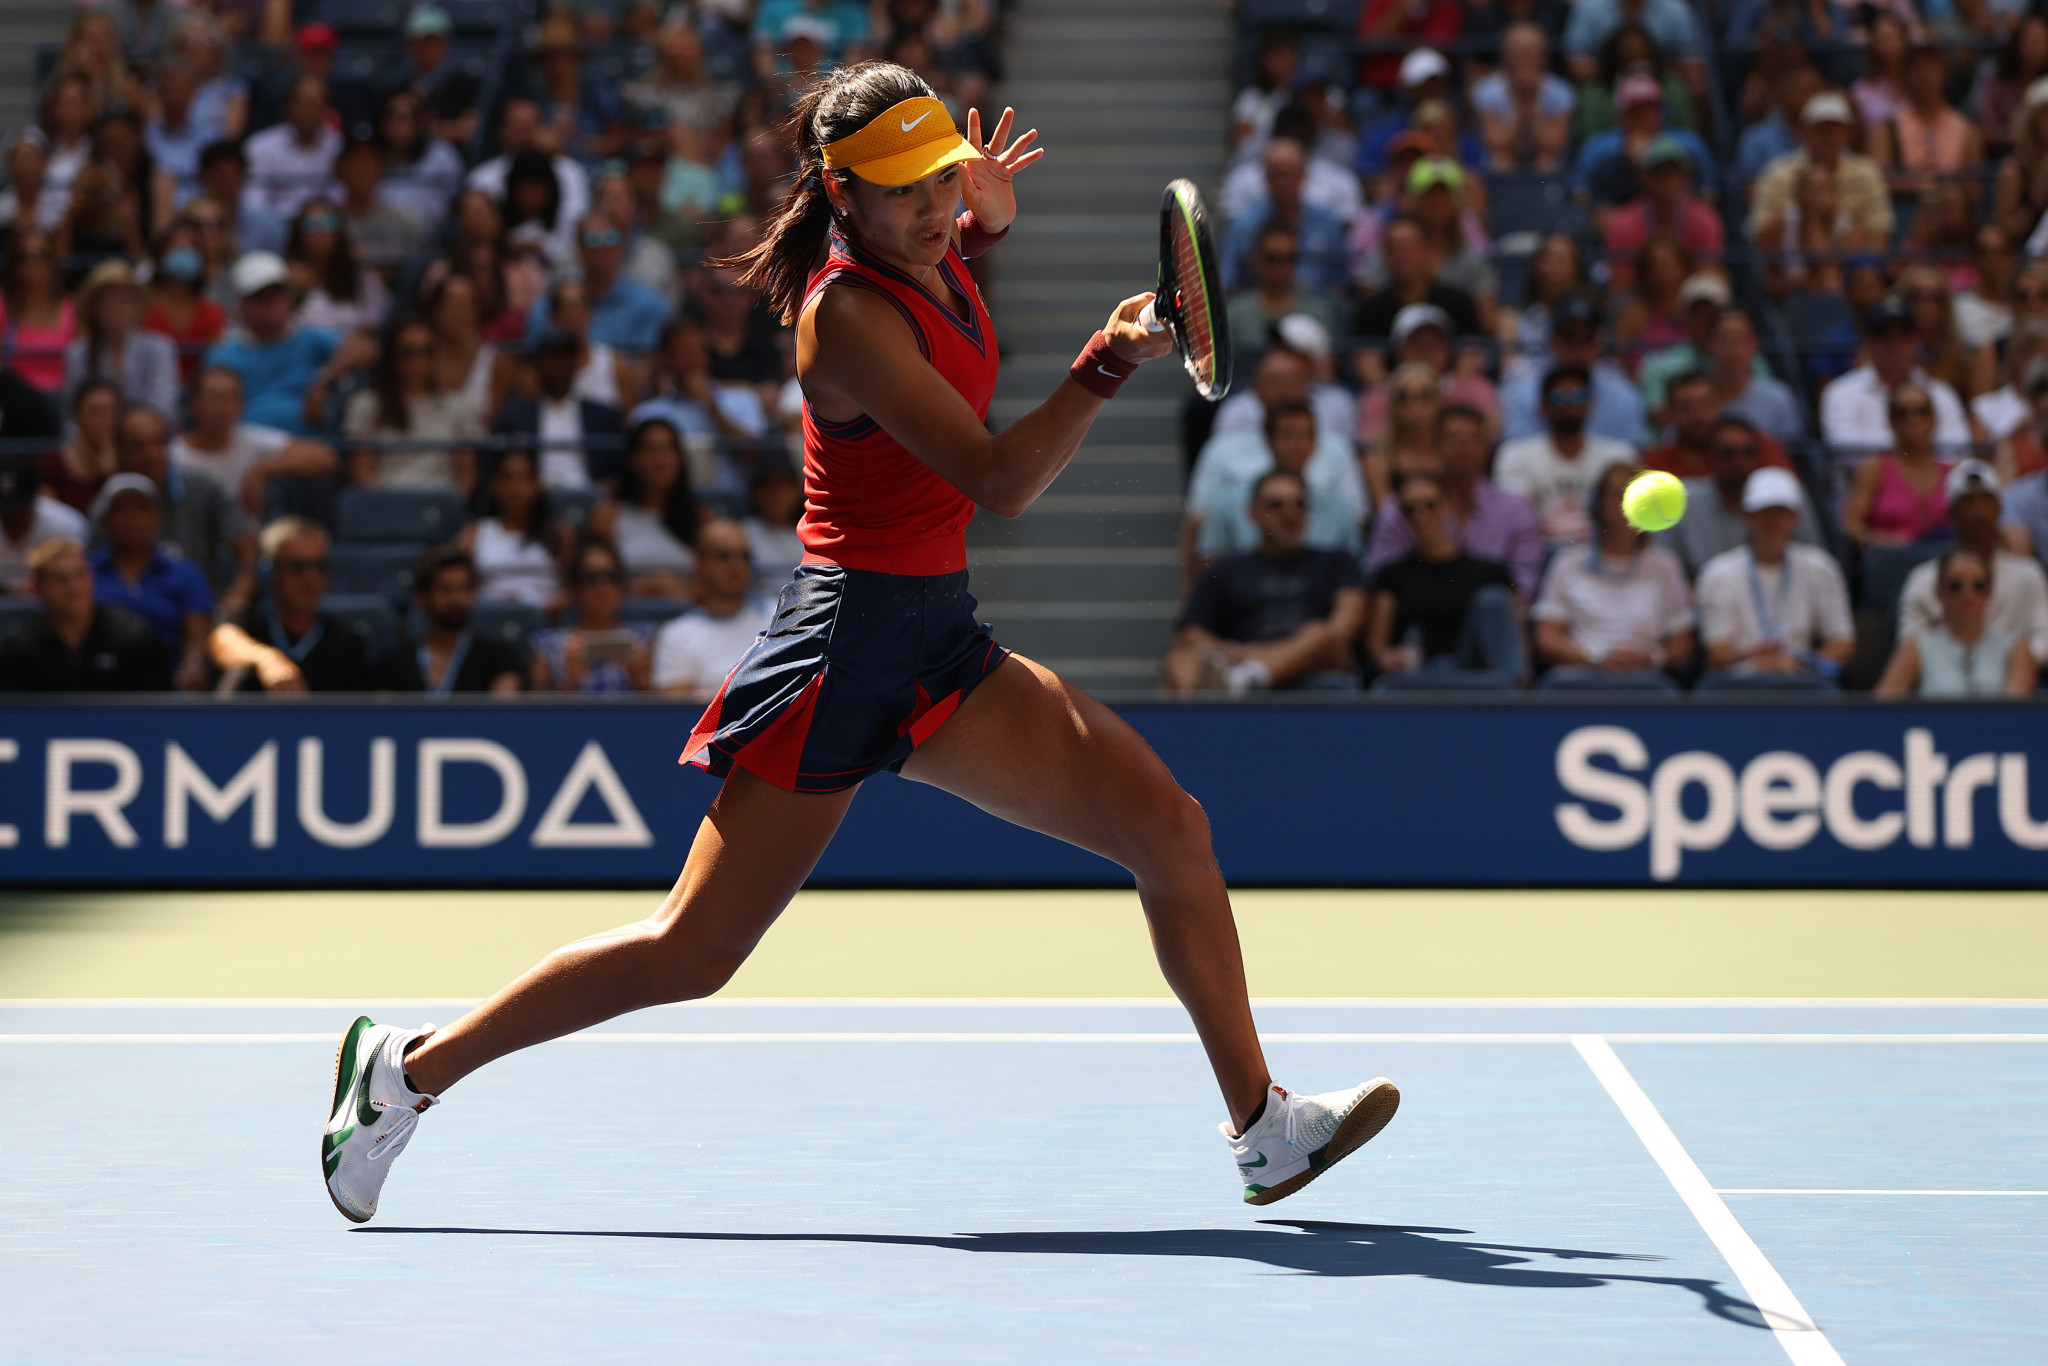 Raducanu becomes first qualifier to reach US Open semi-finals with win over Bencic